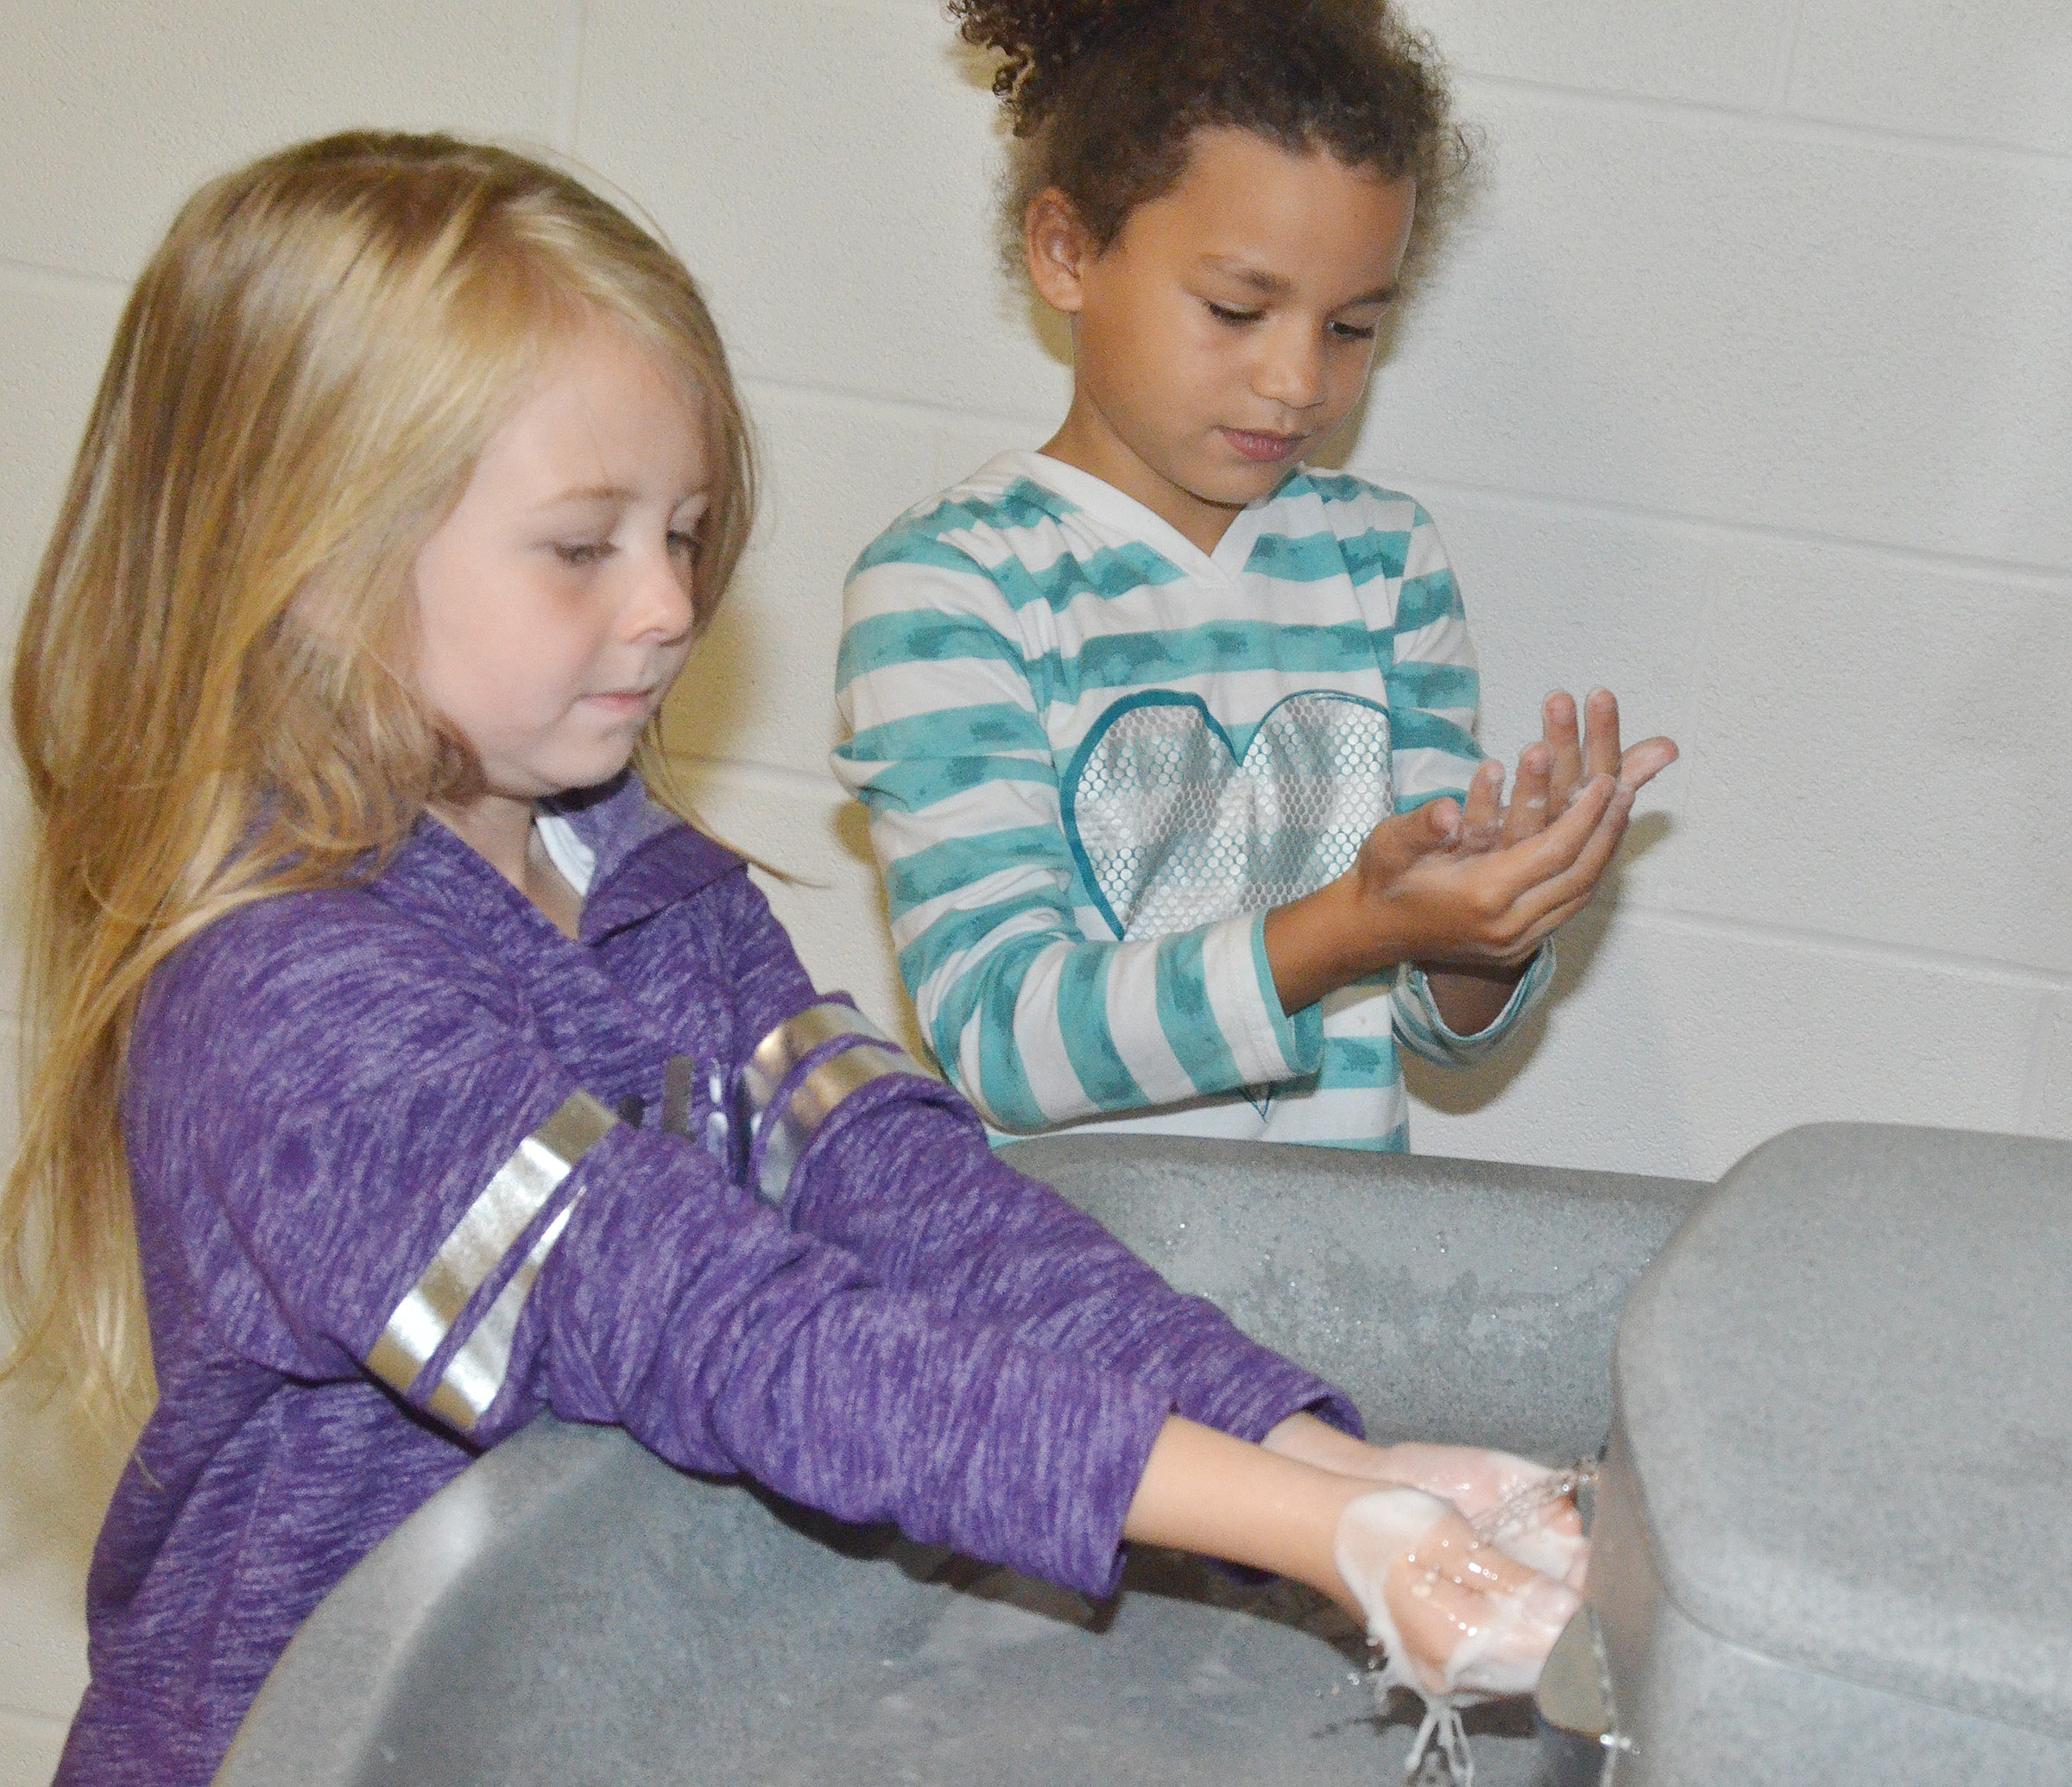 CES first-graders Jewell Brewster, at left, and Aleeya Spaulding practice washing their hands.